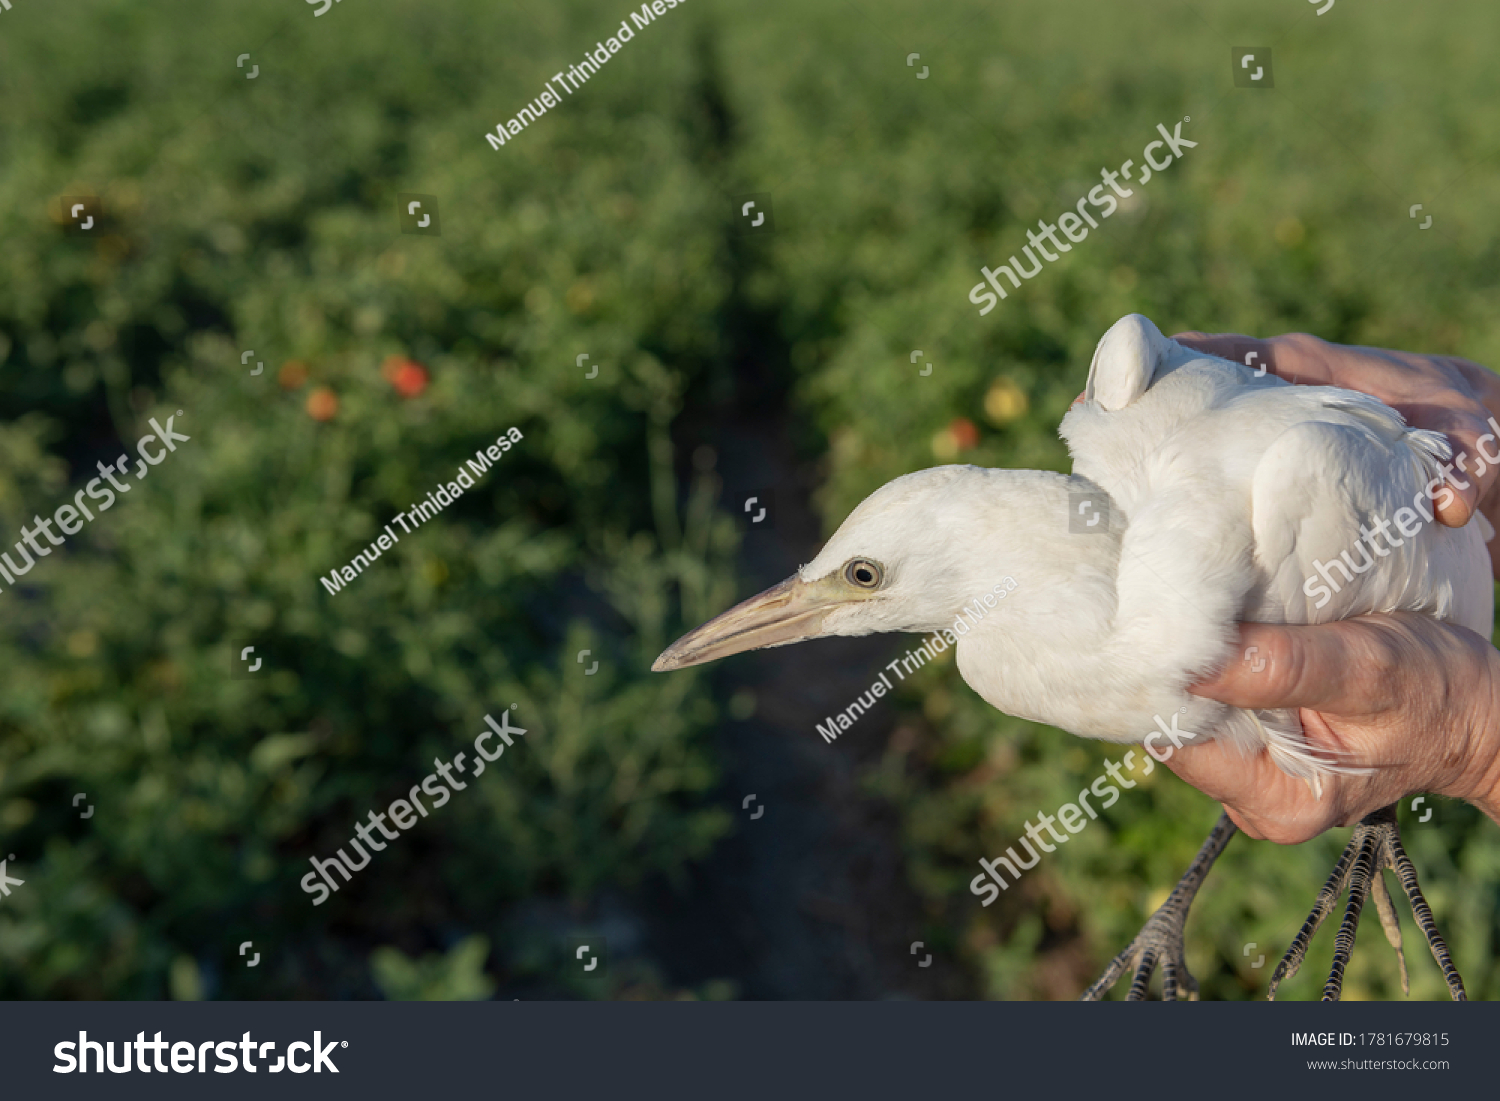 A person holds in his hands a chick of a cattle egret